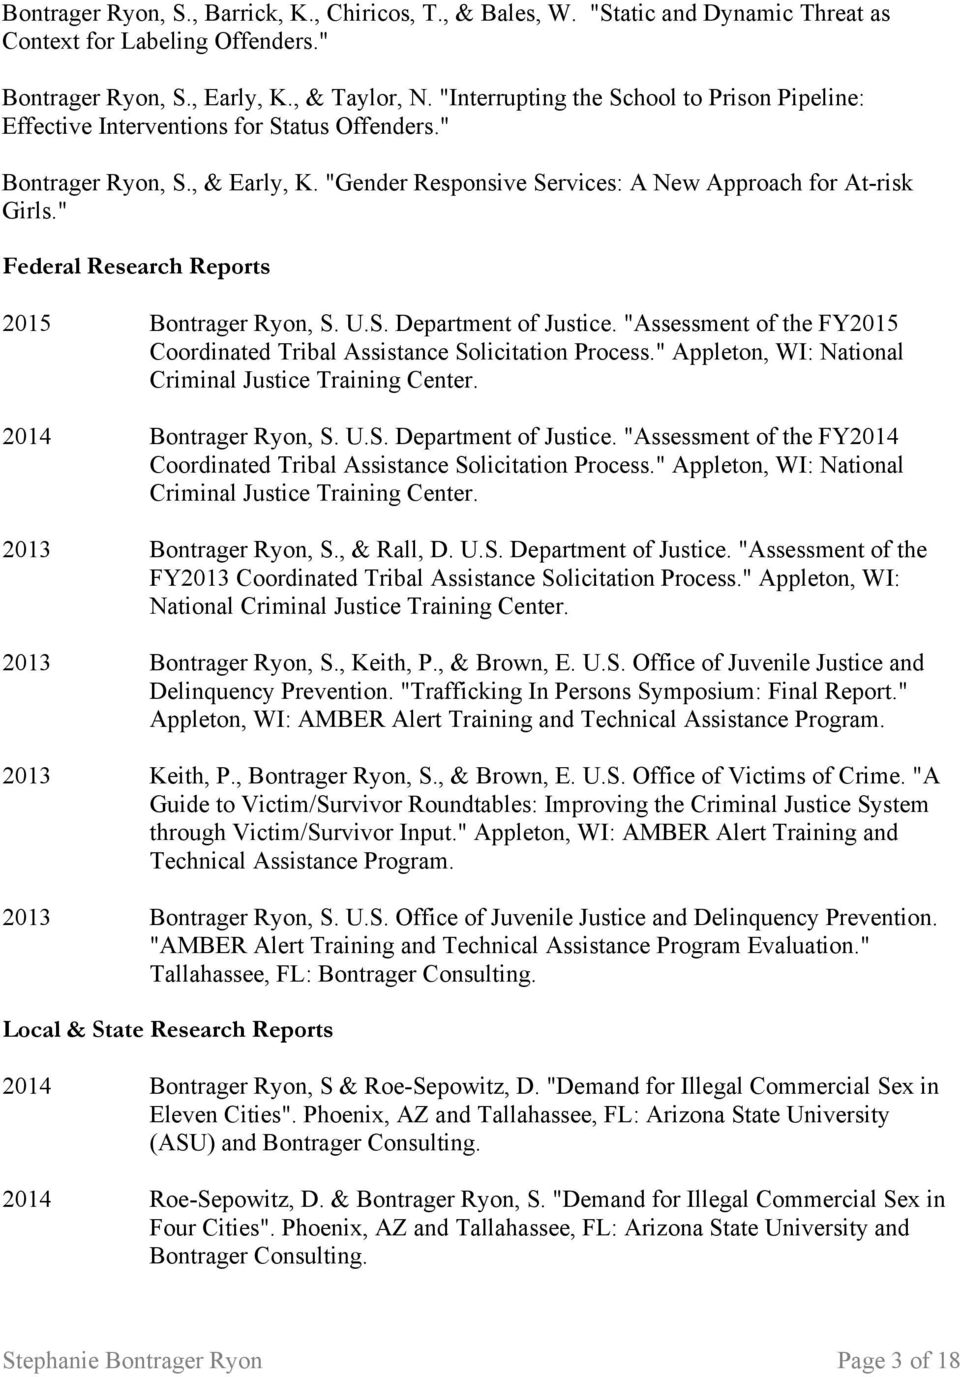 """ Federal Research Reports 2015 Bontrager Ryon, S. U.S. Department of Justice. ""Assessment of the FY2015 Coordinated Tribal Assistance Solicitation Process."